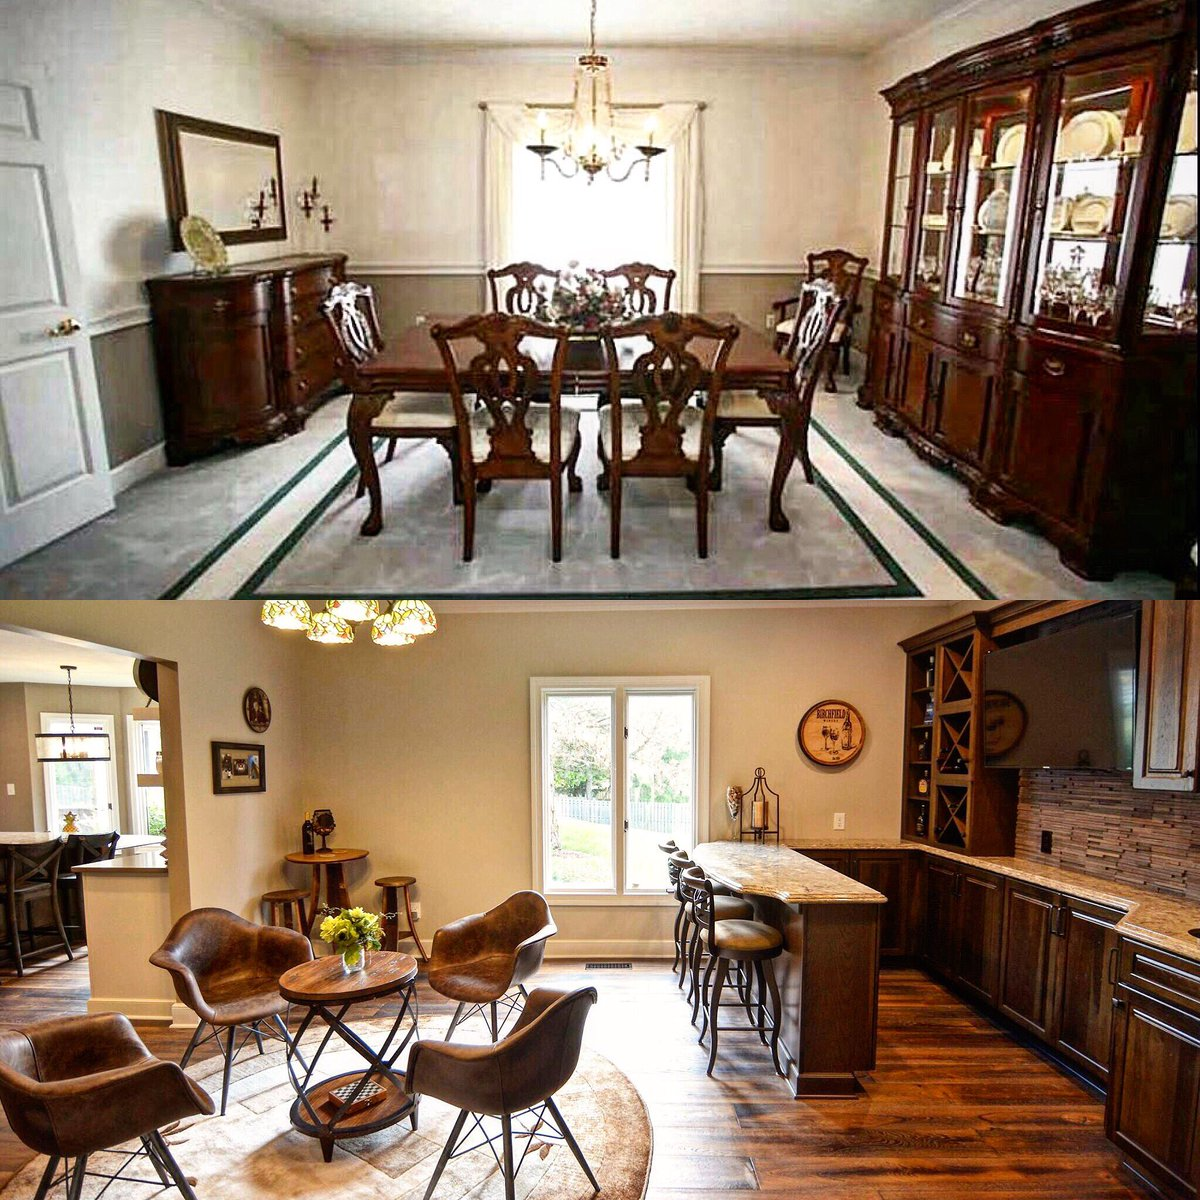 Chateau Kitchens On Twitter BEFORE AFTER Dining Room Converted